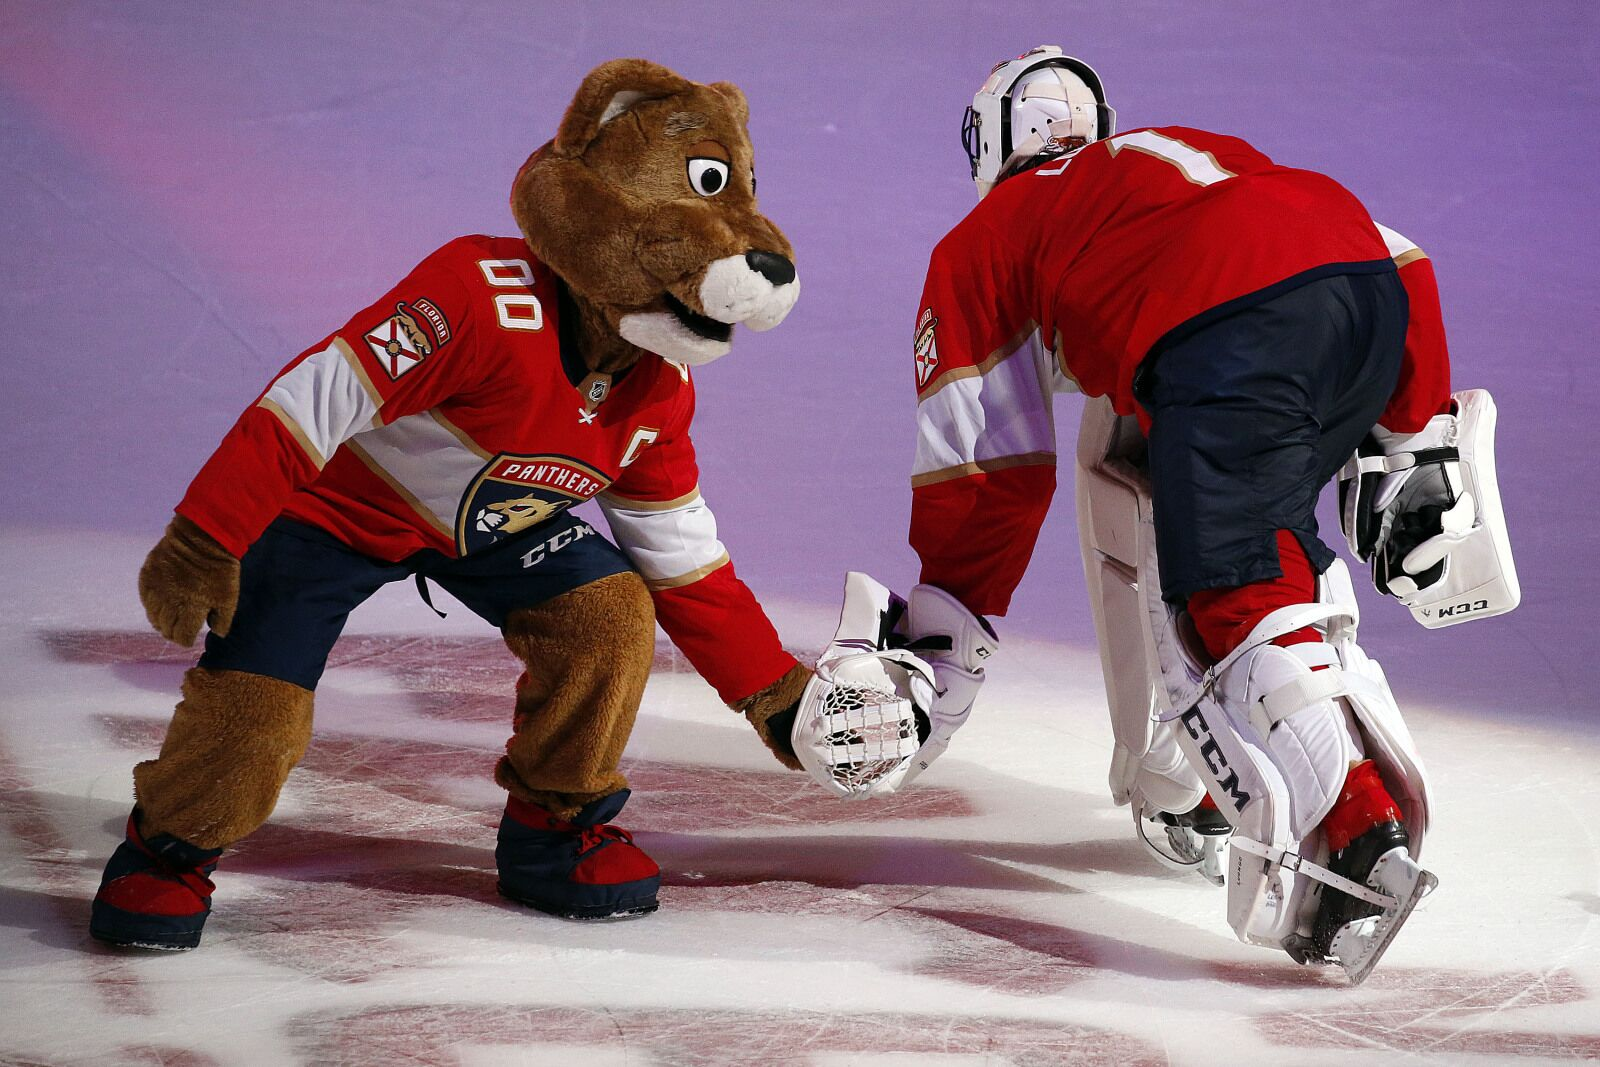 Florida Panthers Made the Right Choice Retiring Luongo's Jersey